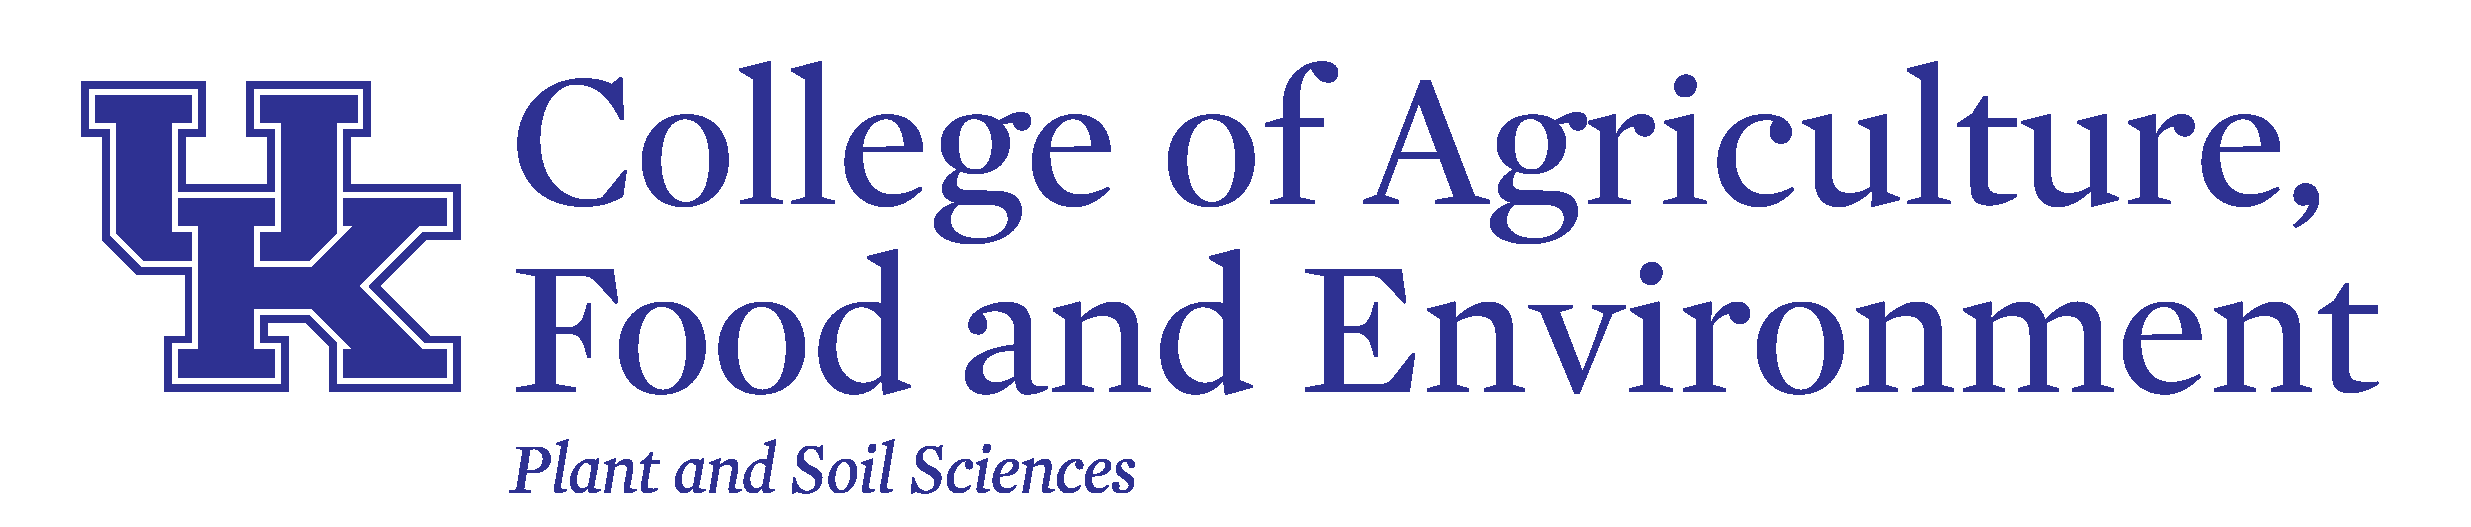 Department of Plant and Soil Sciences logo